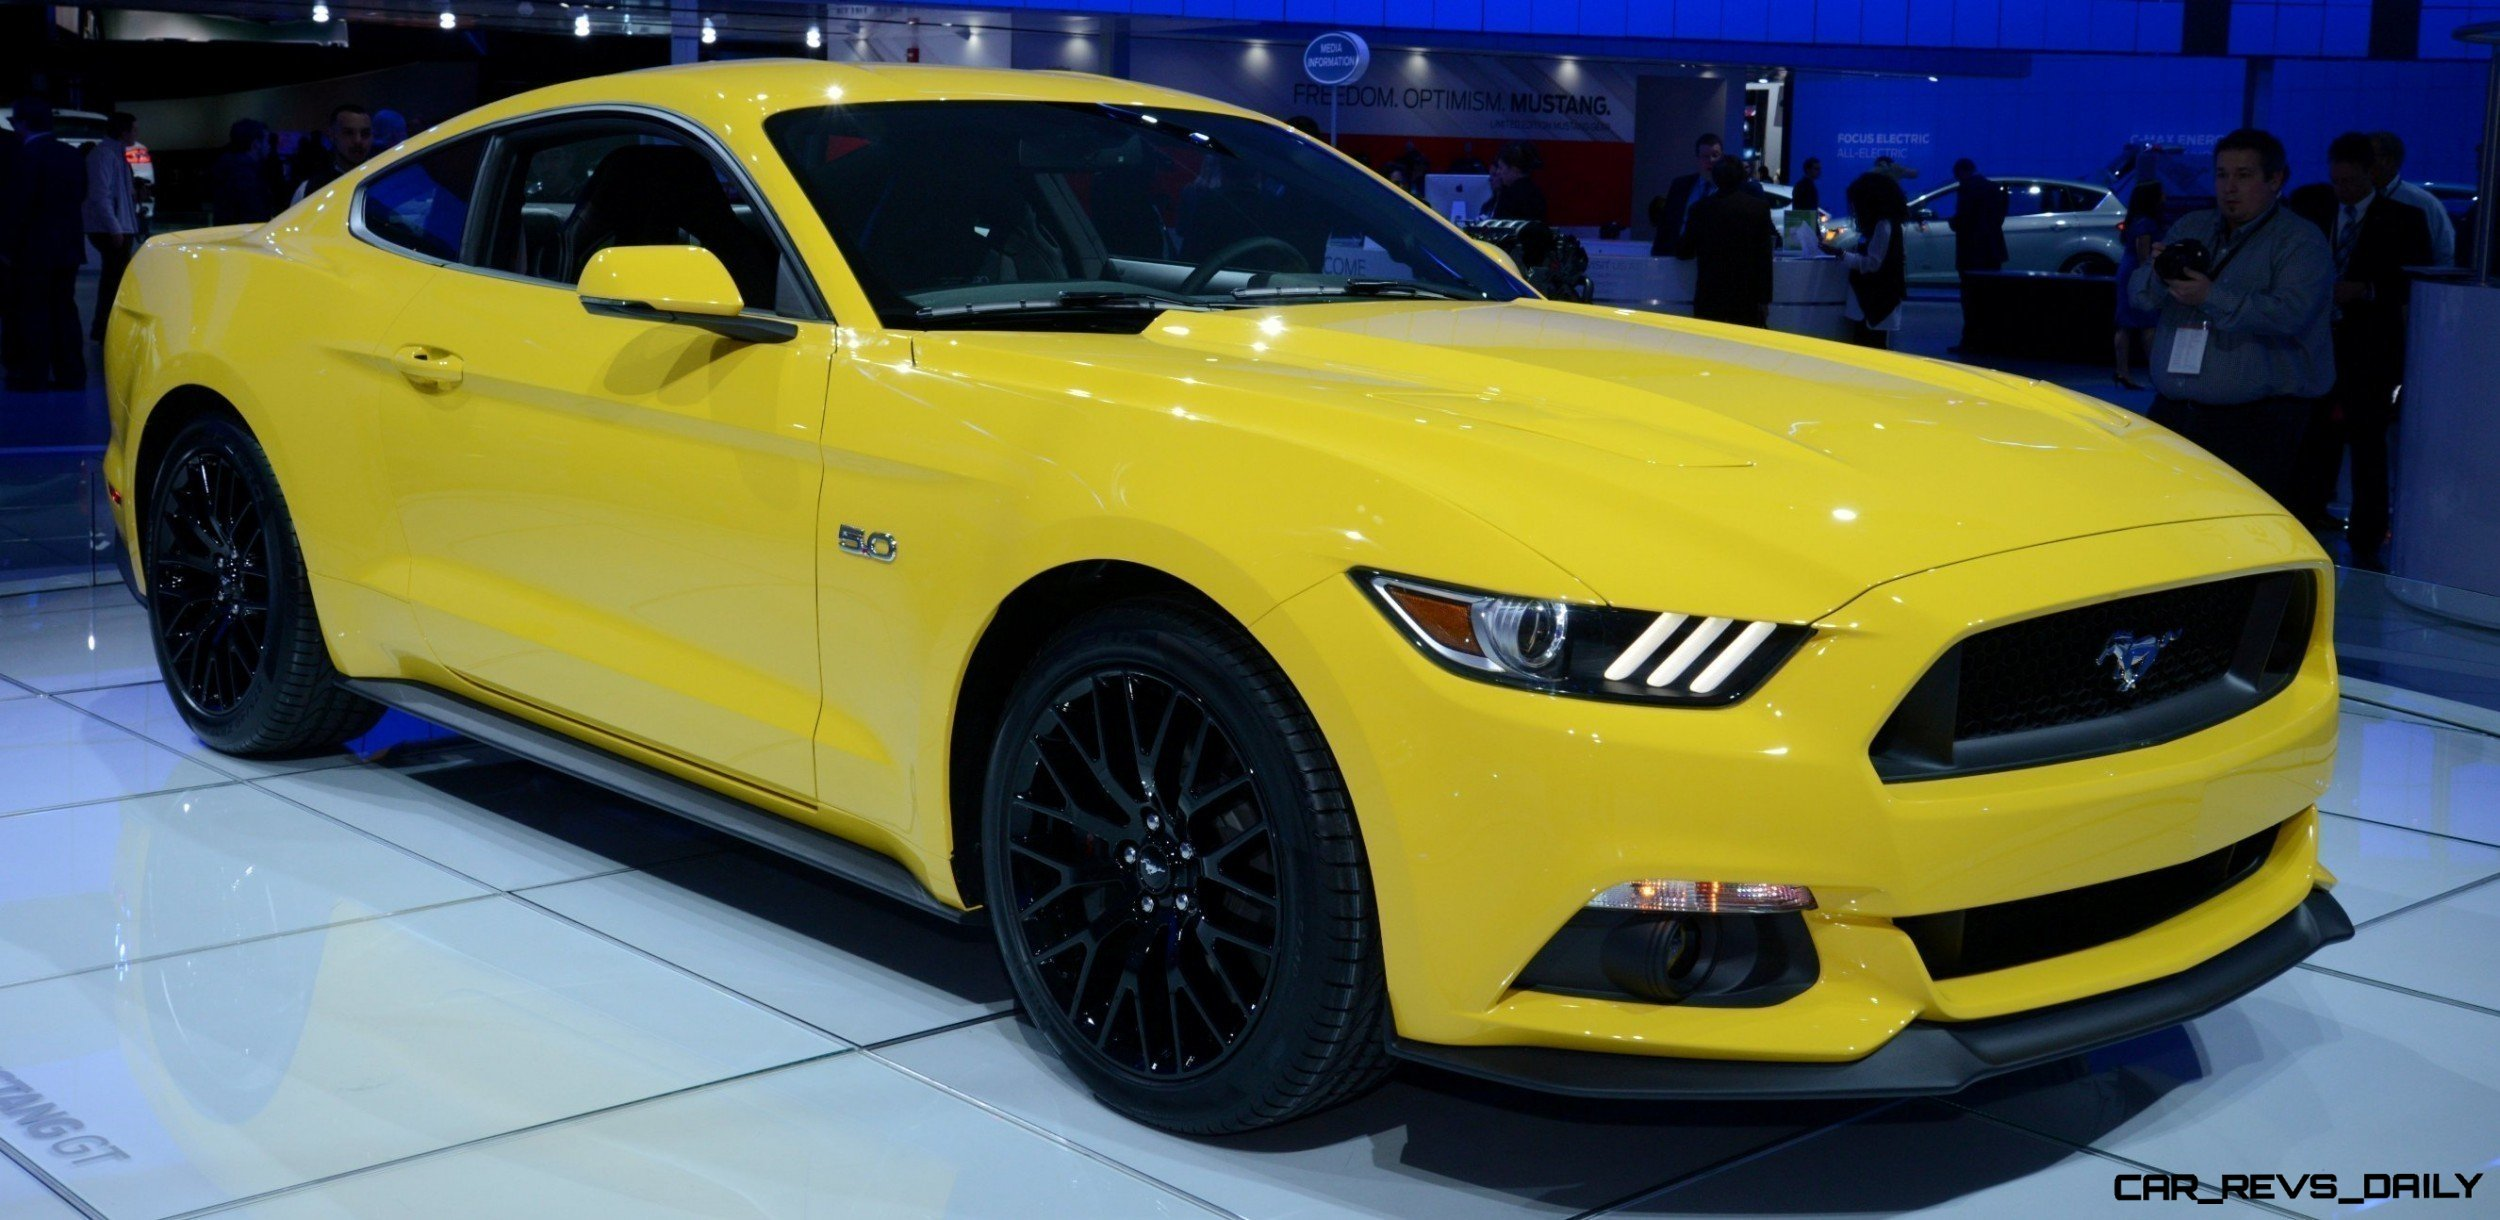 2015 Ford Mustang GT Mean Lean and Ready To Brawl in Latest Real Life Photos Yellow GT 181 photo